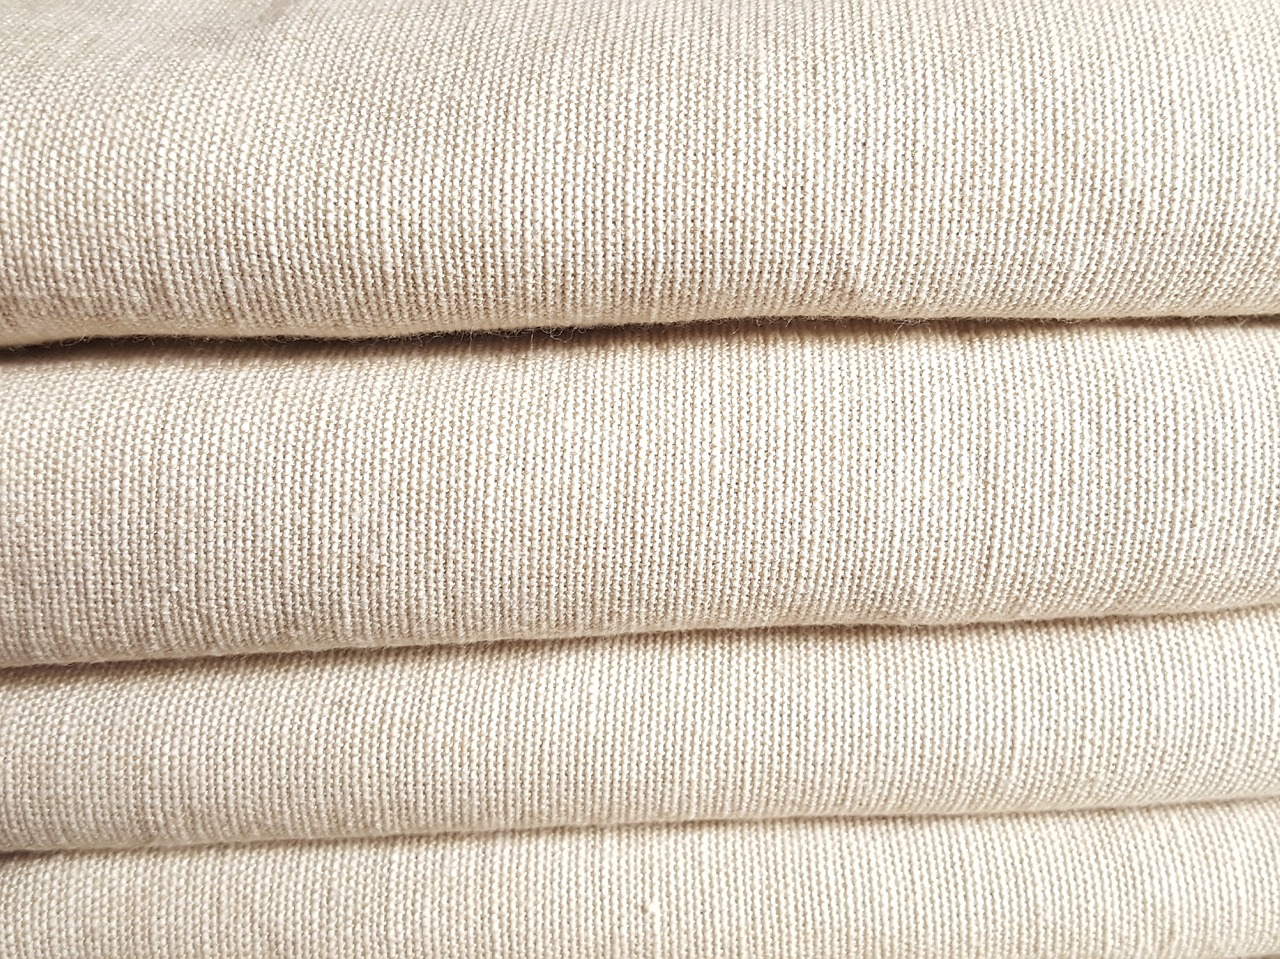 Flax Linen Fibers Natural Bast Fibers Textile School